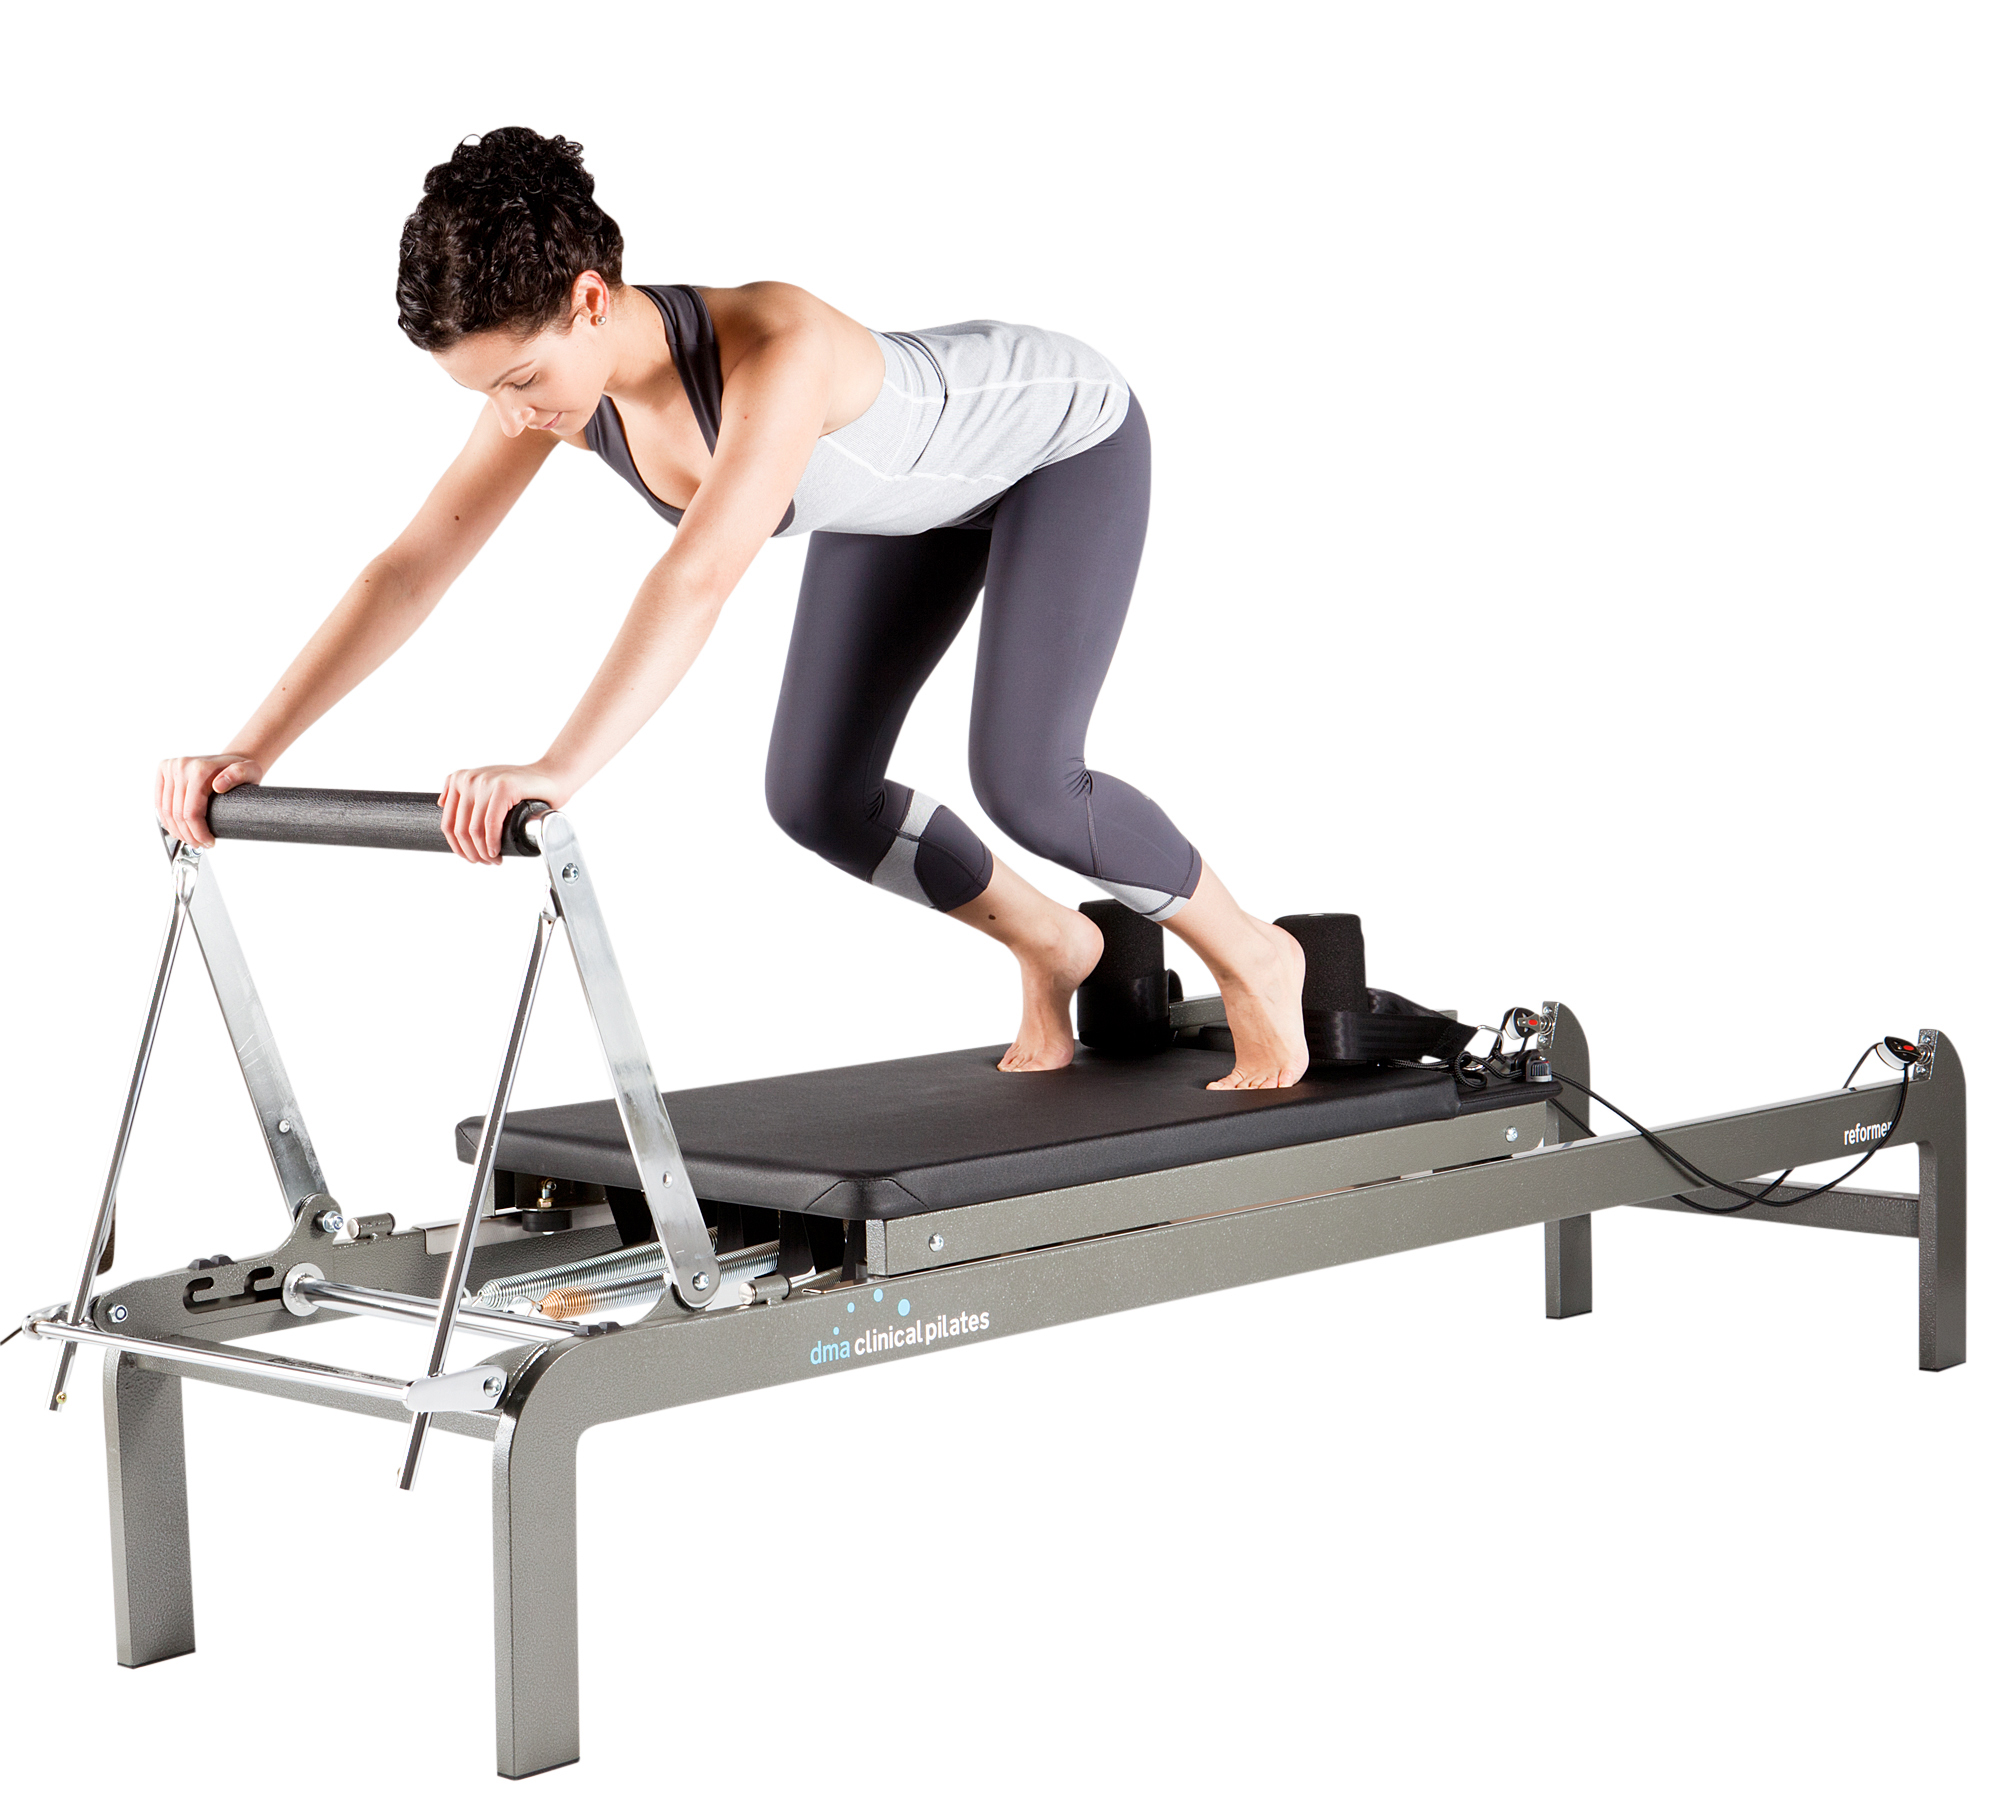 Dma Pilates Reformer Used By Professionals Used In Home